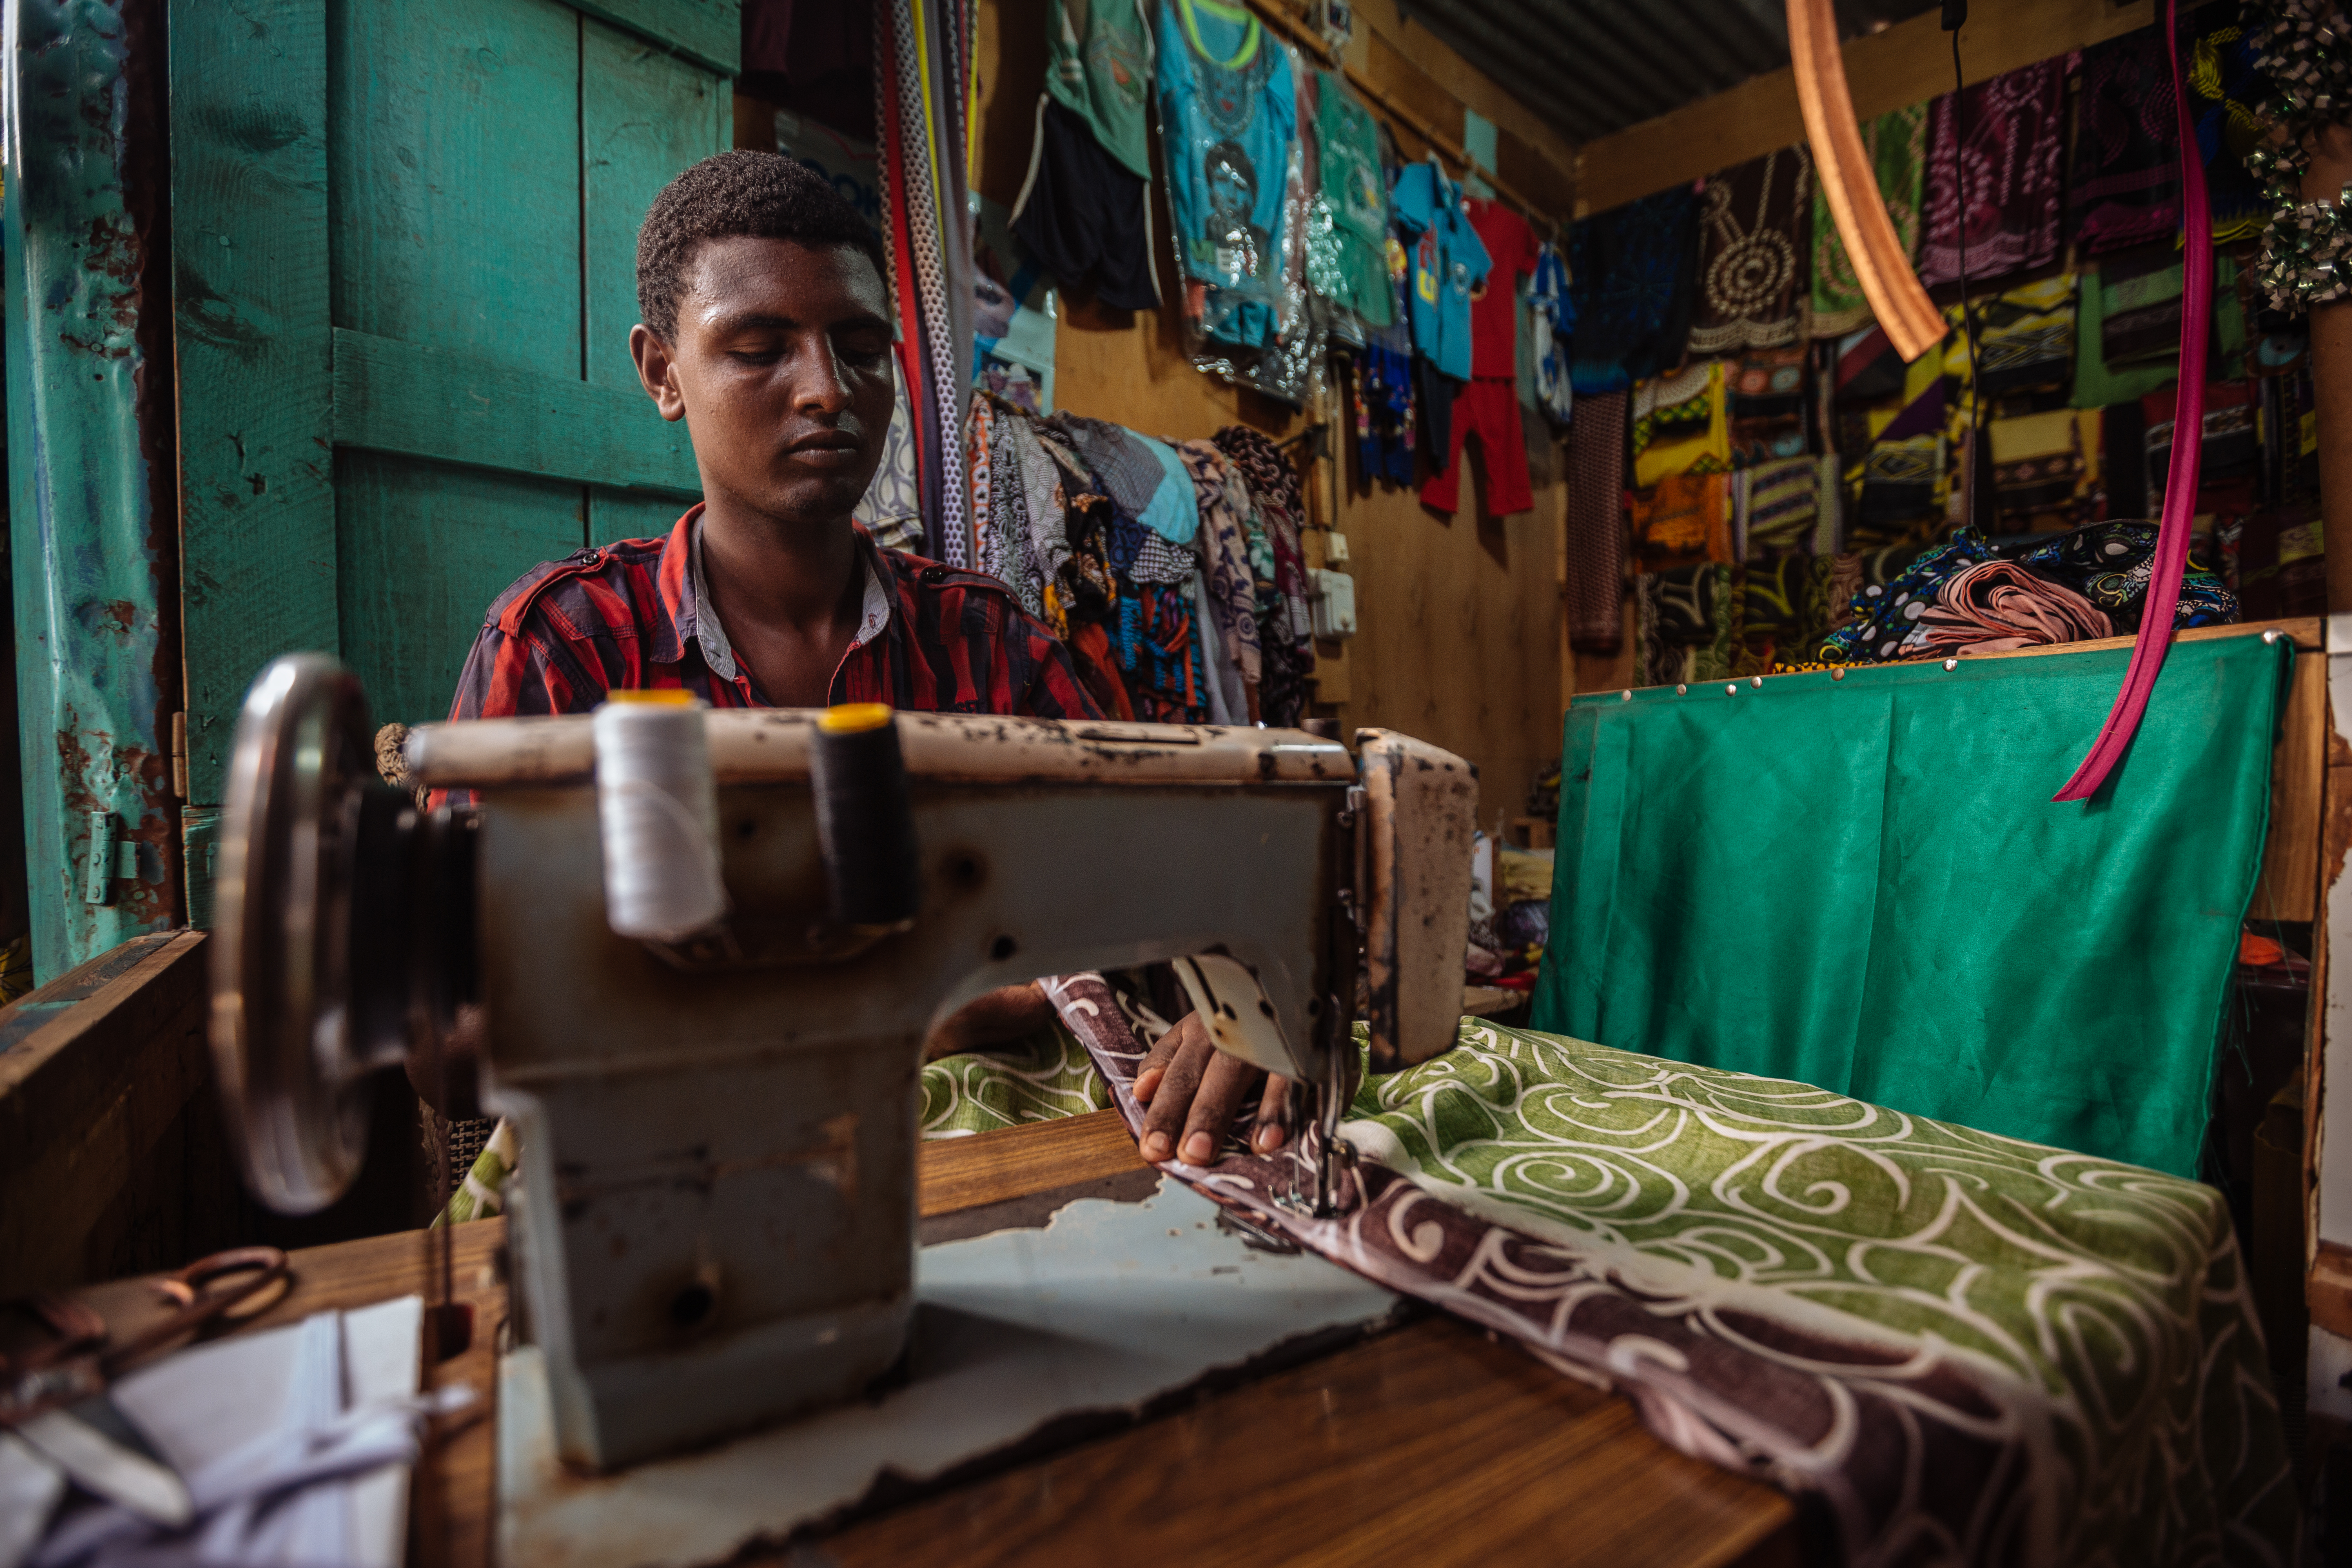 Sabil is a 20 year old Ethiopian migrant living in the town of Balbala. Originally from the Oromo region of Ethiopia, he came to the town two years ago searching for better work prospects.